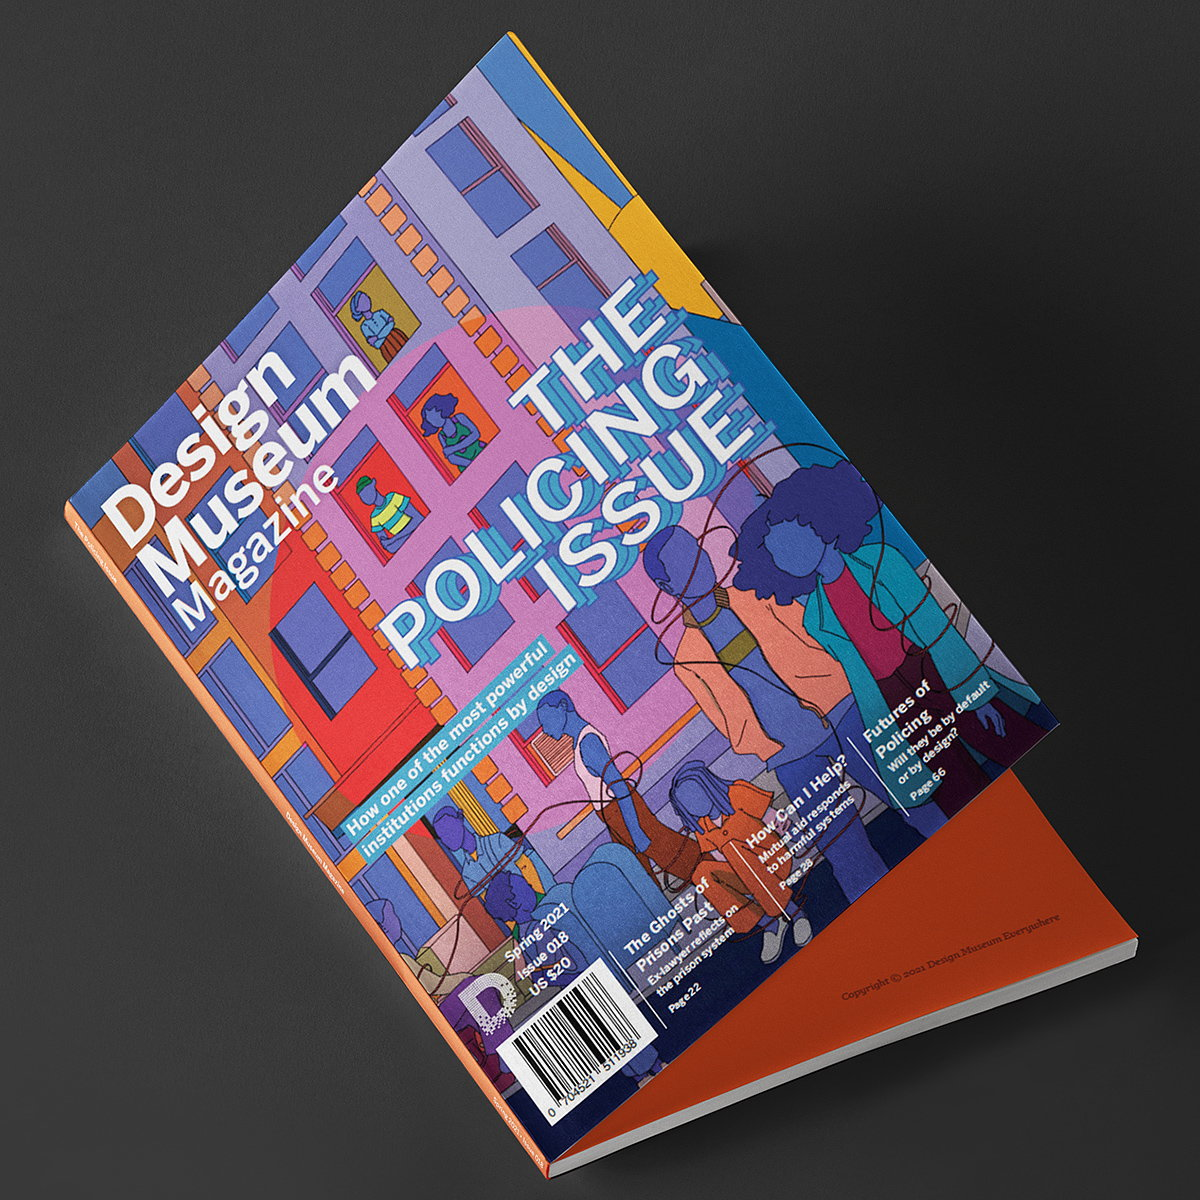 Design Museum Magazine's Policing Issue Explores How the Most Powerful Institution Functions by Design